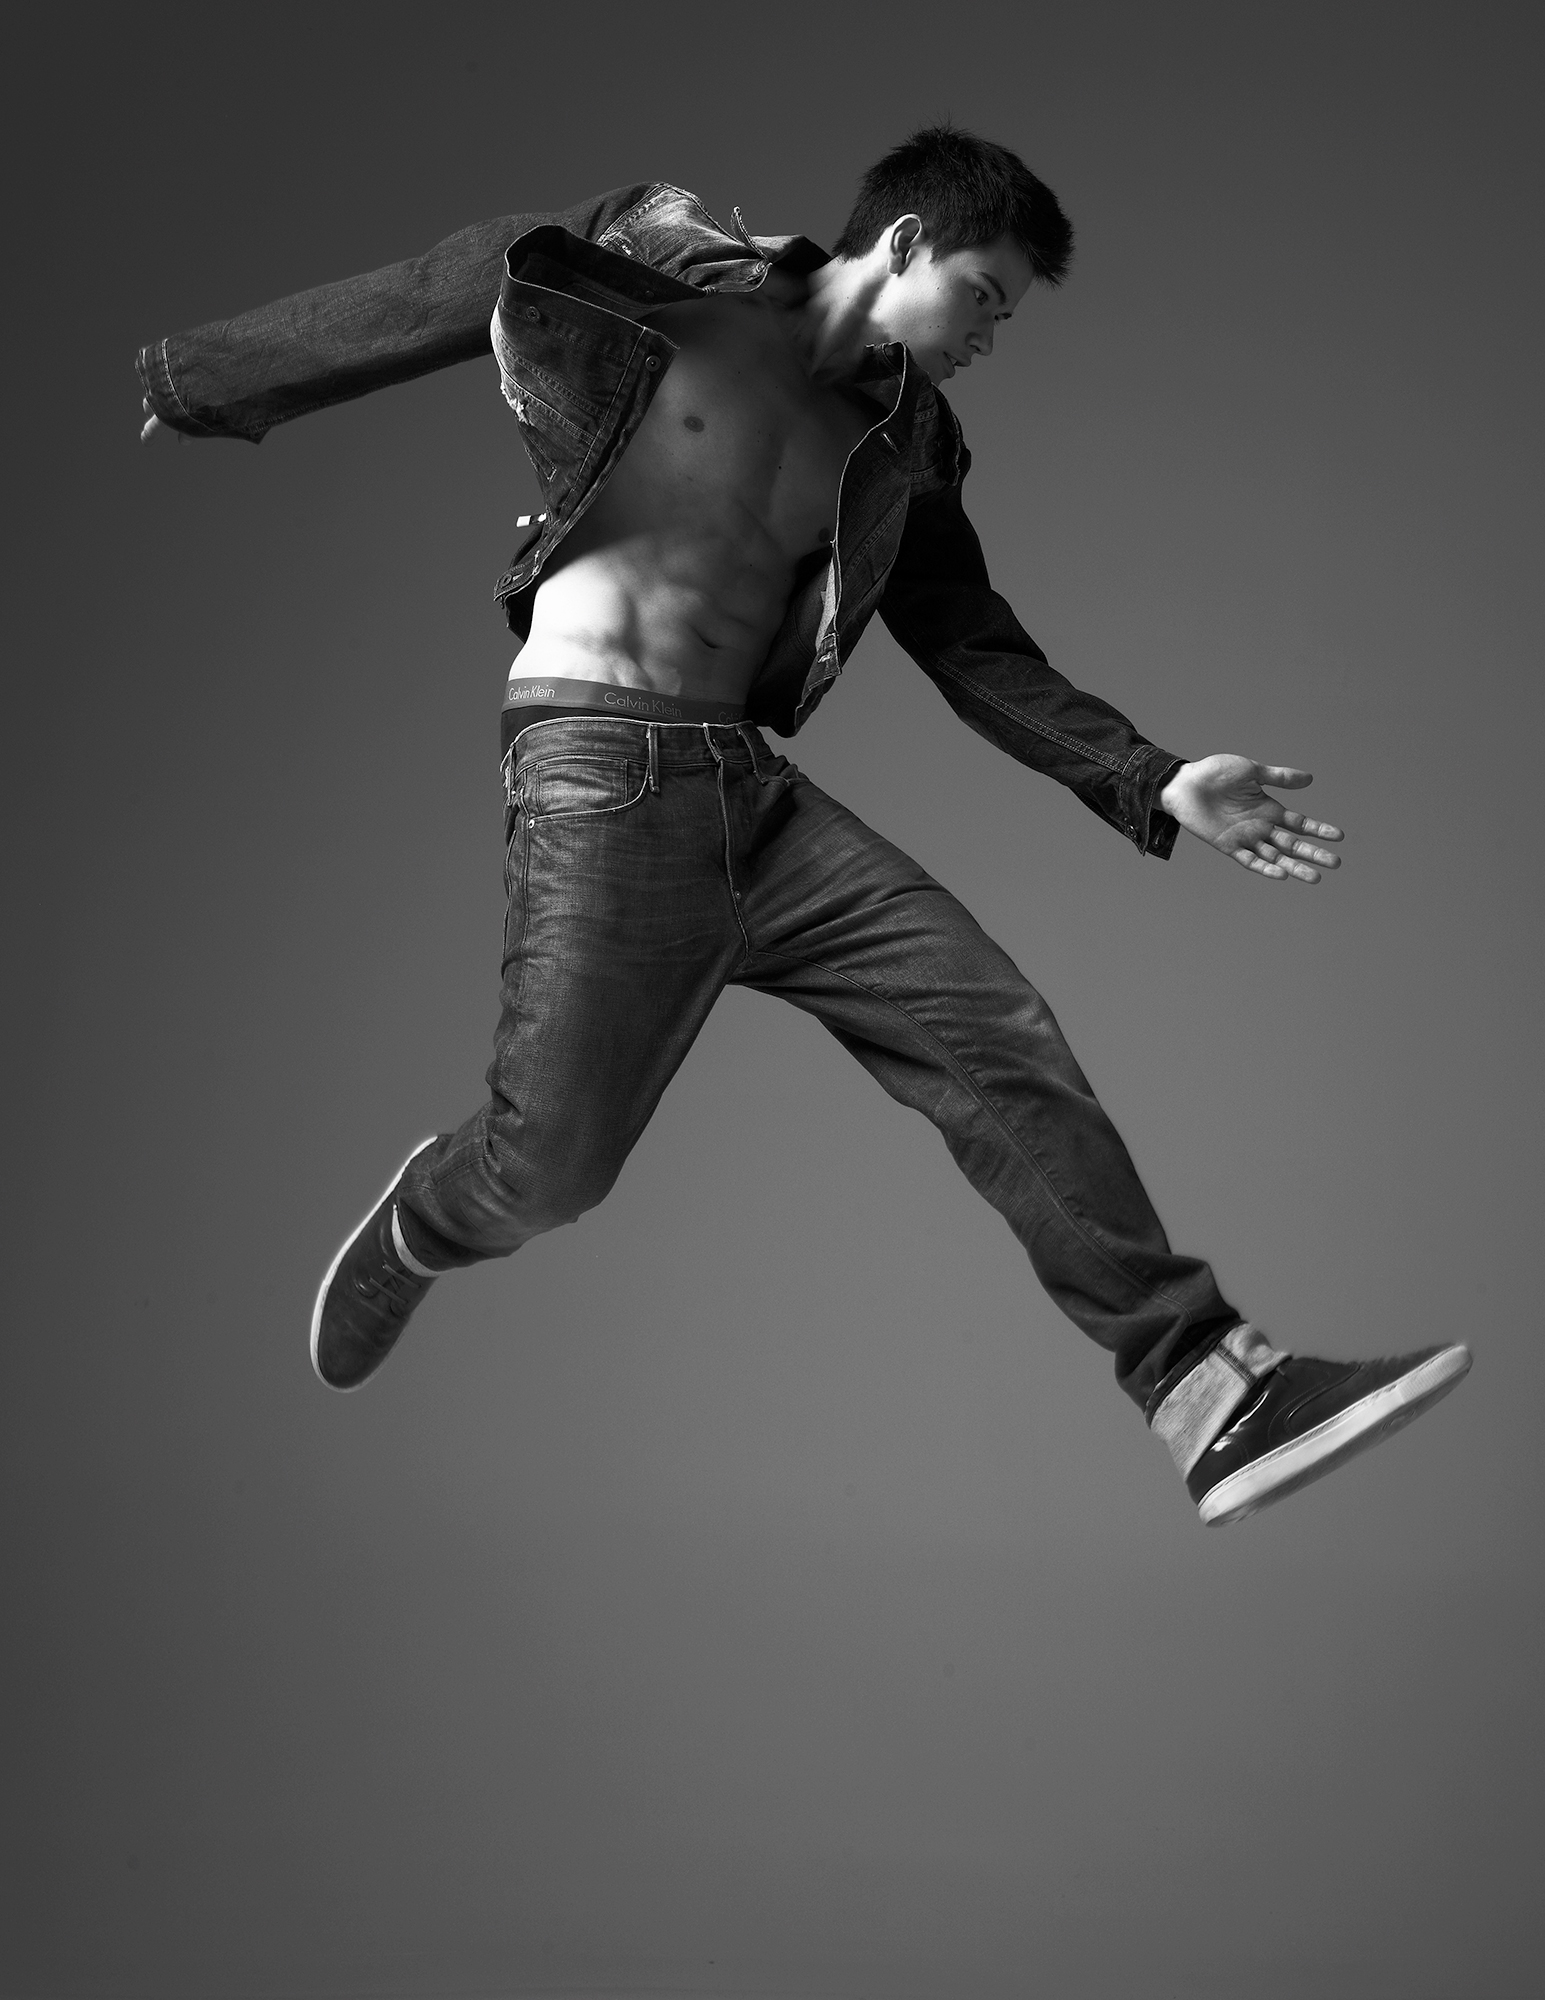 Robert-Ascroft-Jump-09